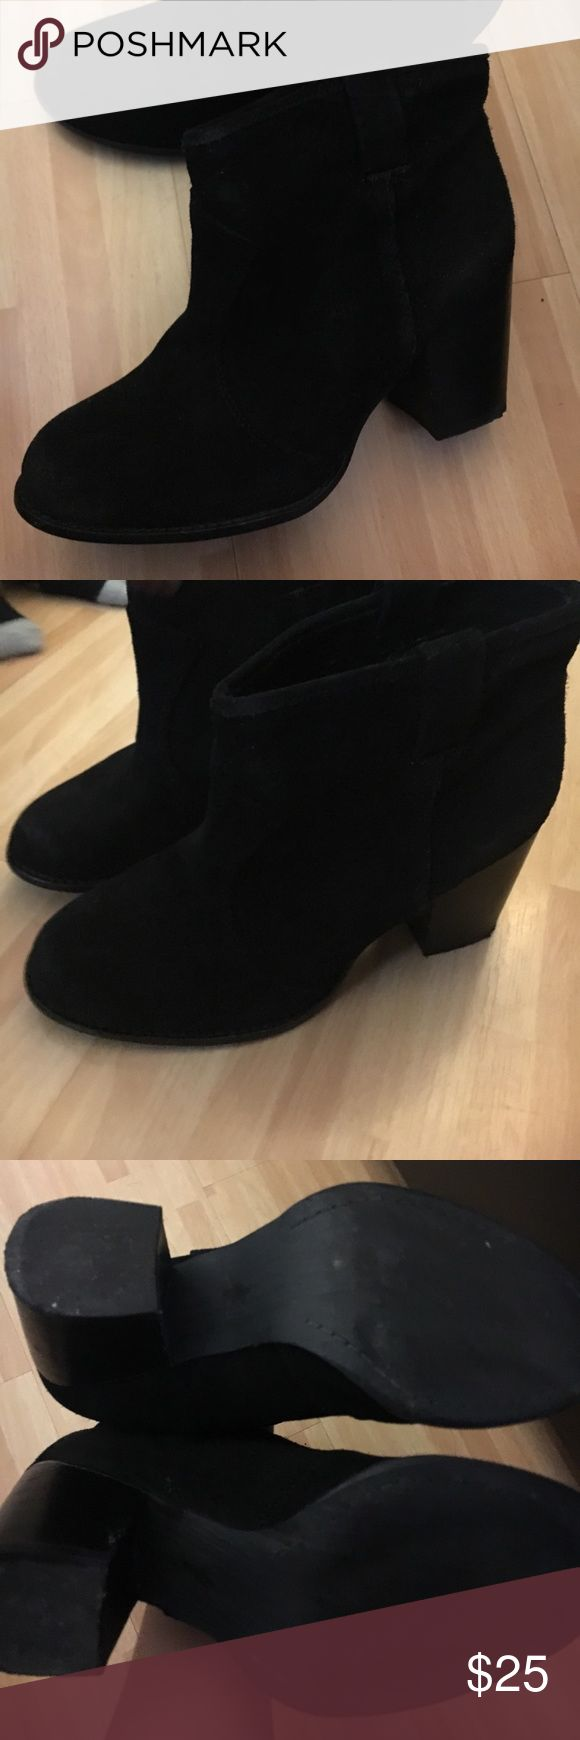 Splendid Lakota black booties Super cute black booties really comfortable moving need to get rid of as much in my closet Splendid Shoes Ankle Boots & Booties